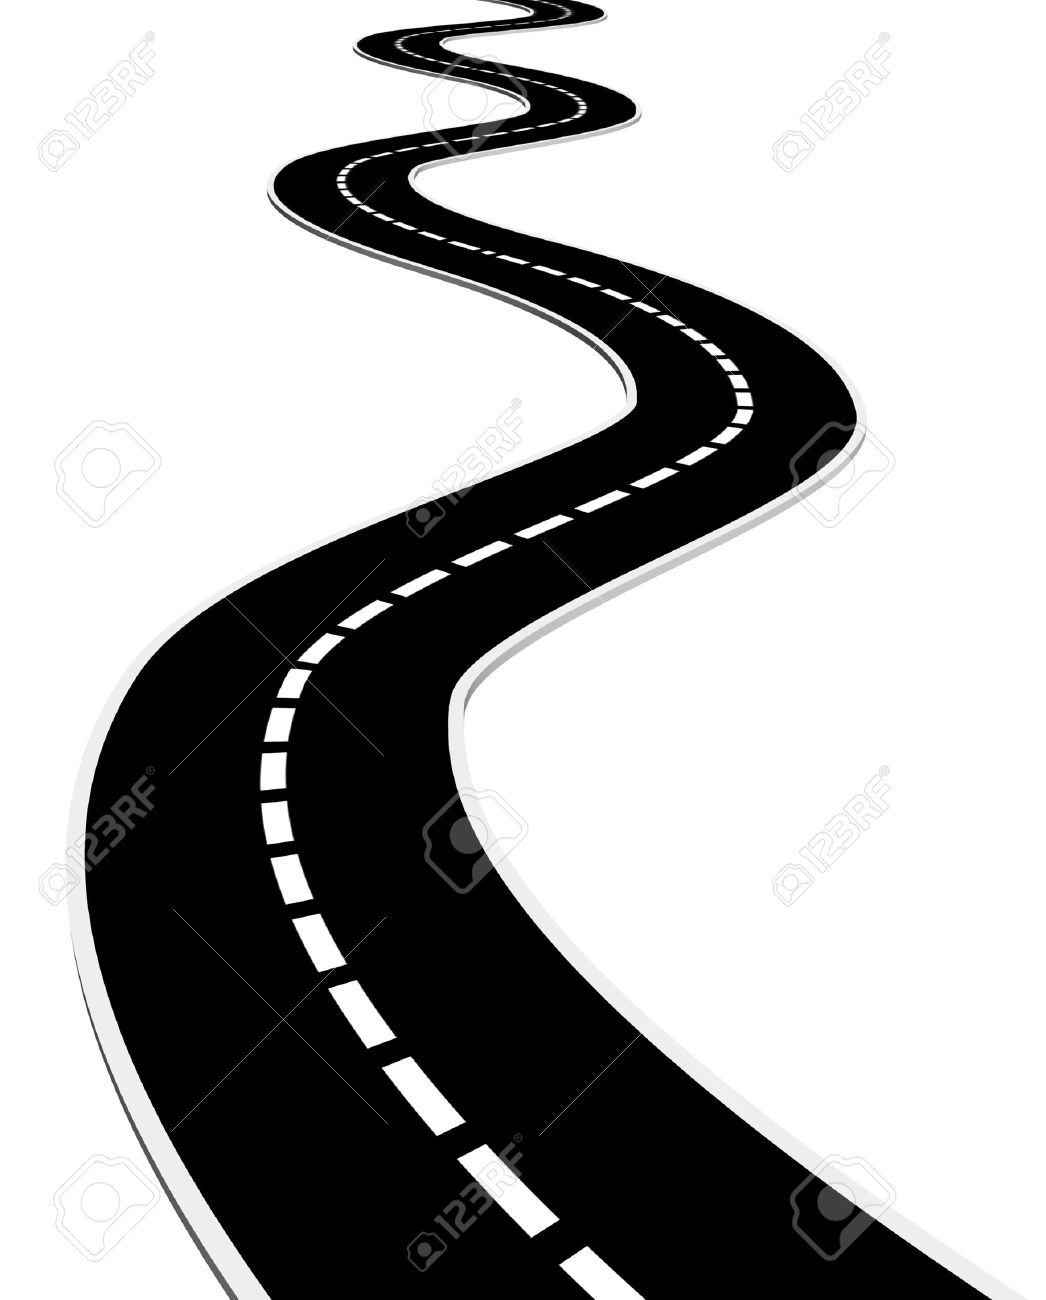 pin Way clipart curve road #2 - Zigzag Road PNG